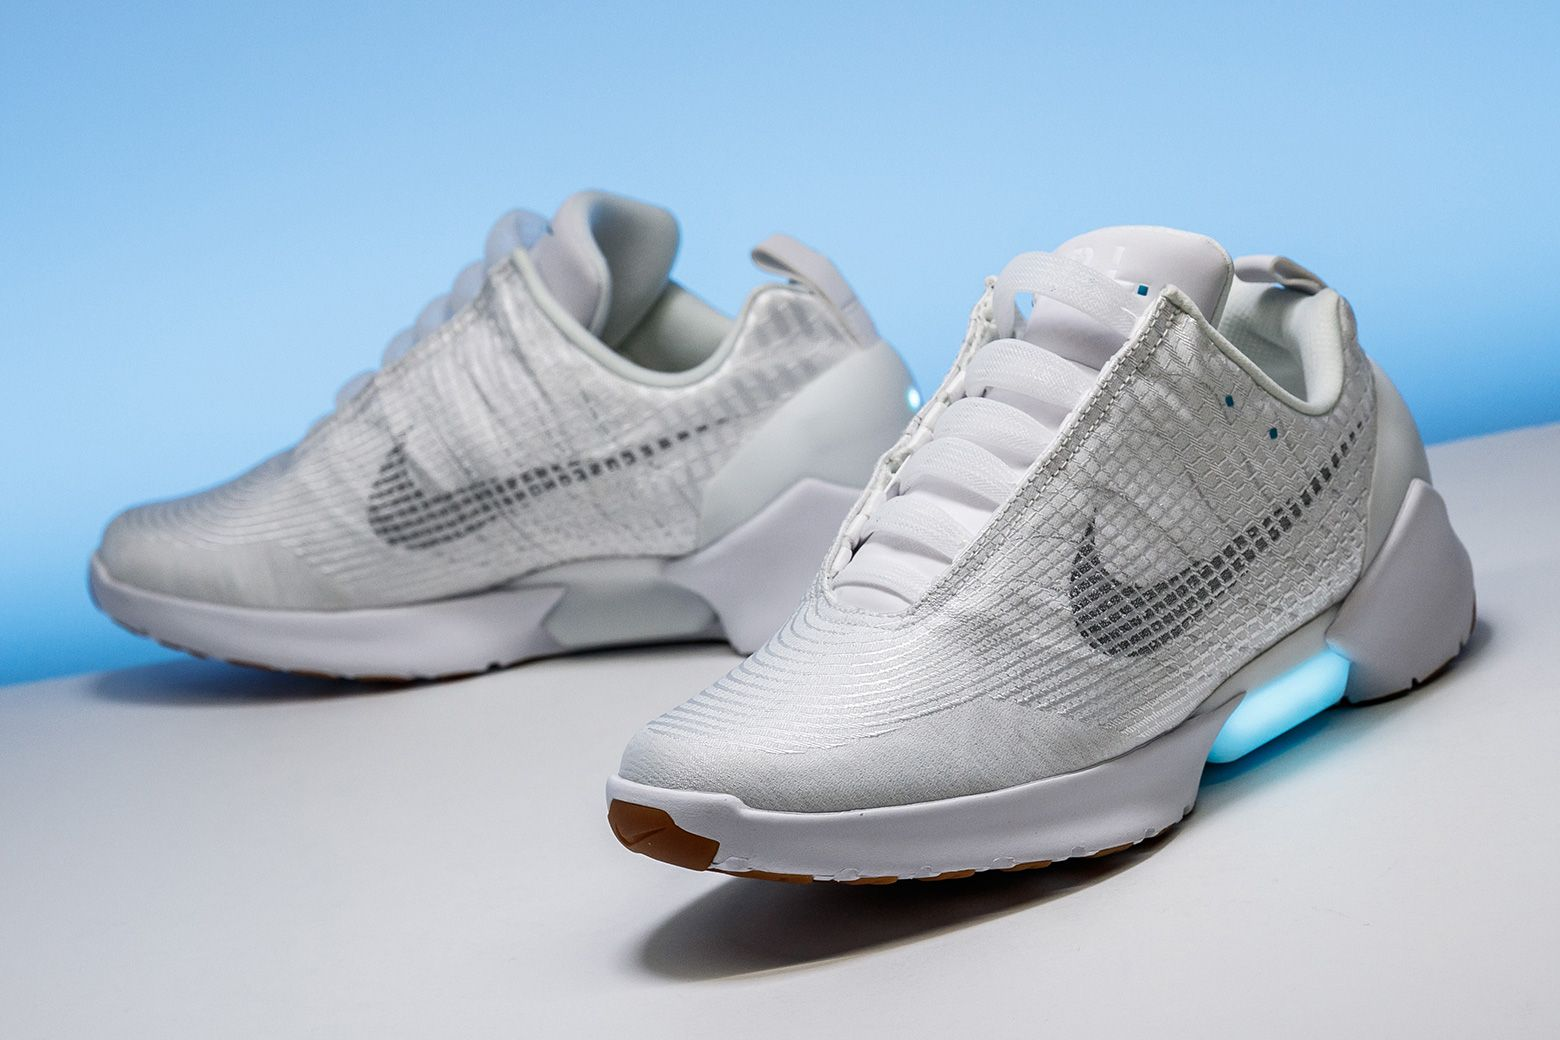 Nike's HyperAdapt 1.0 trainers – the Back To The Future self